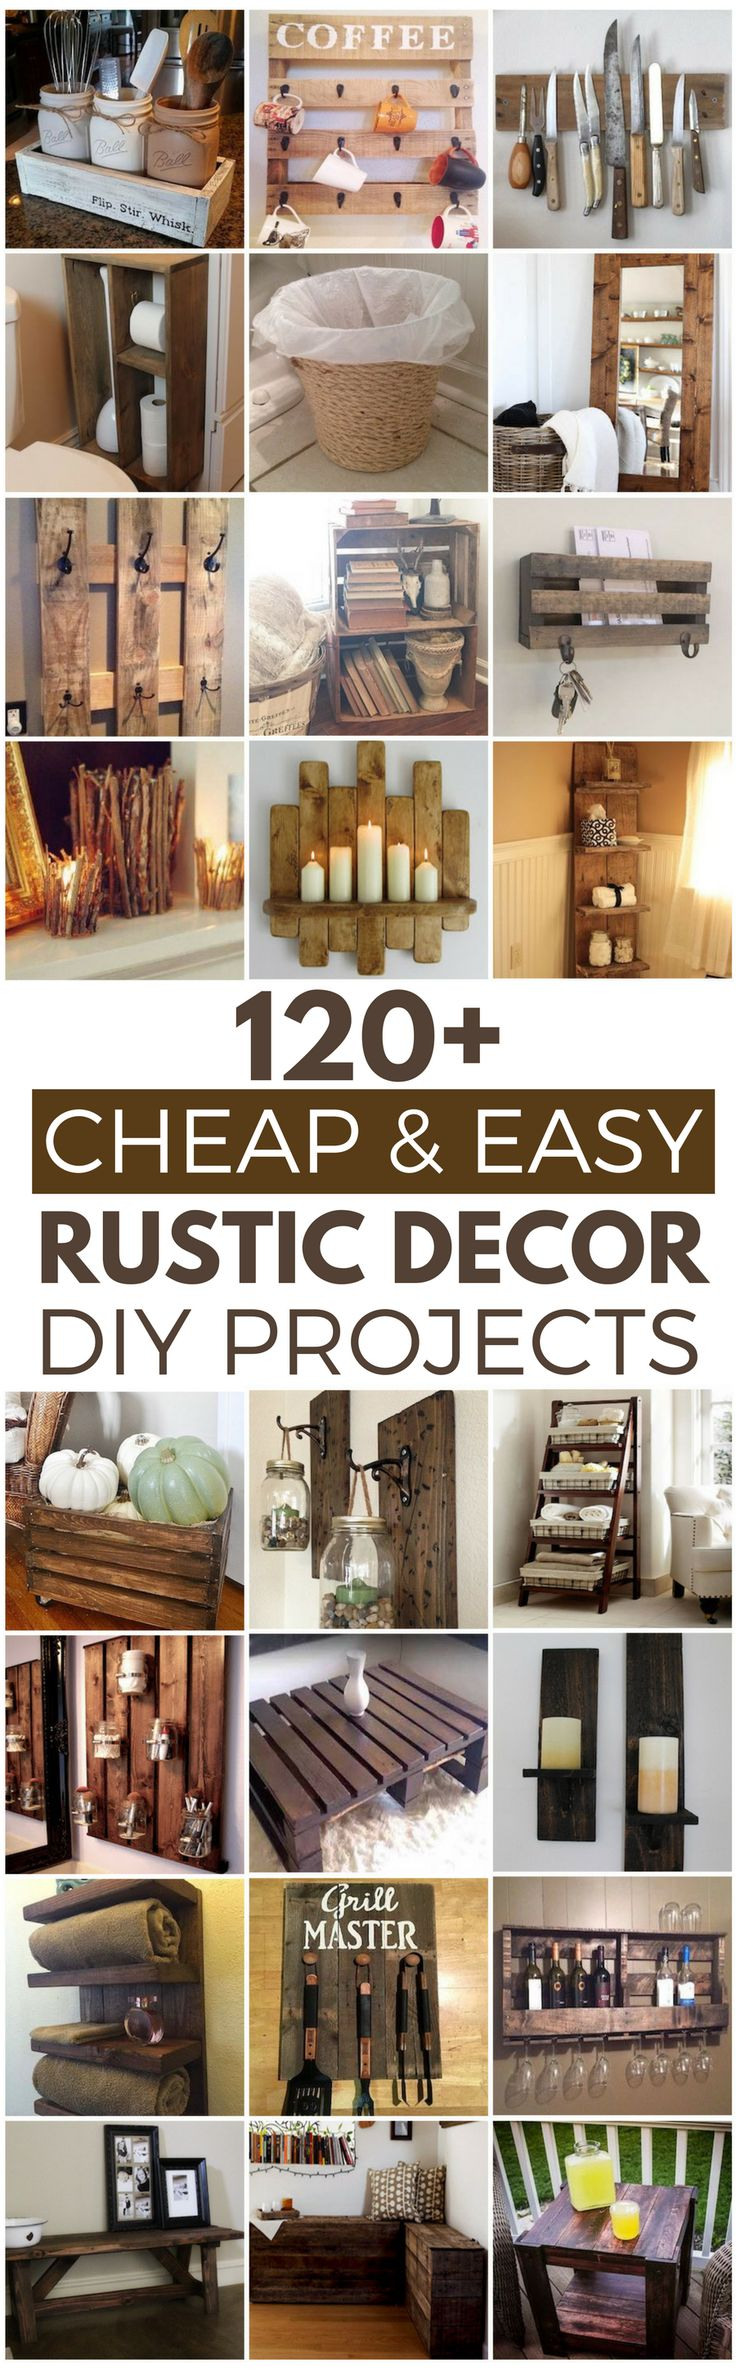 Cheap Home Decor And Furniture find this pin and more on home love decor ideas 25 Best Ideas About Easy Home Decor On Pinterest Budget Decorating Cheap Decorating Ideas And Low Budget Decorating